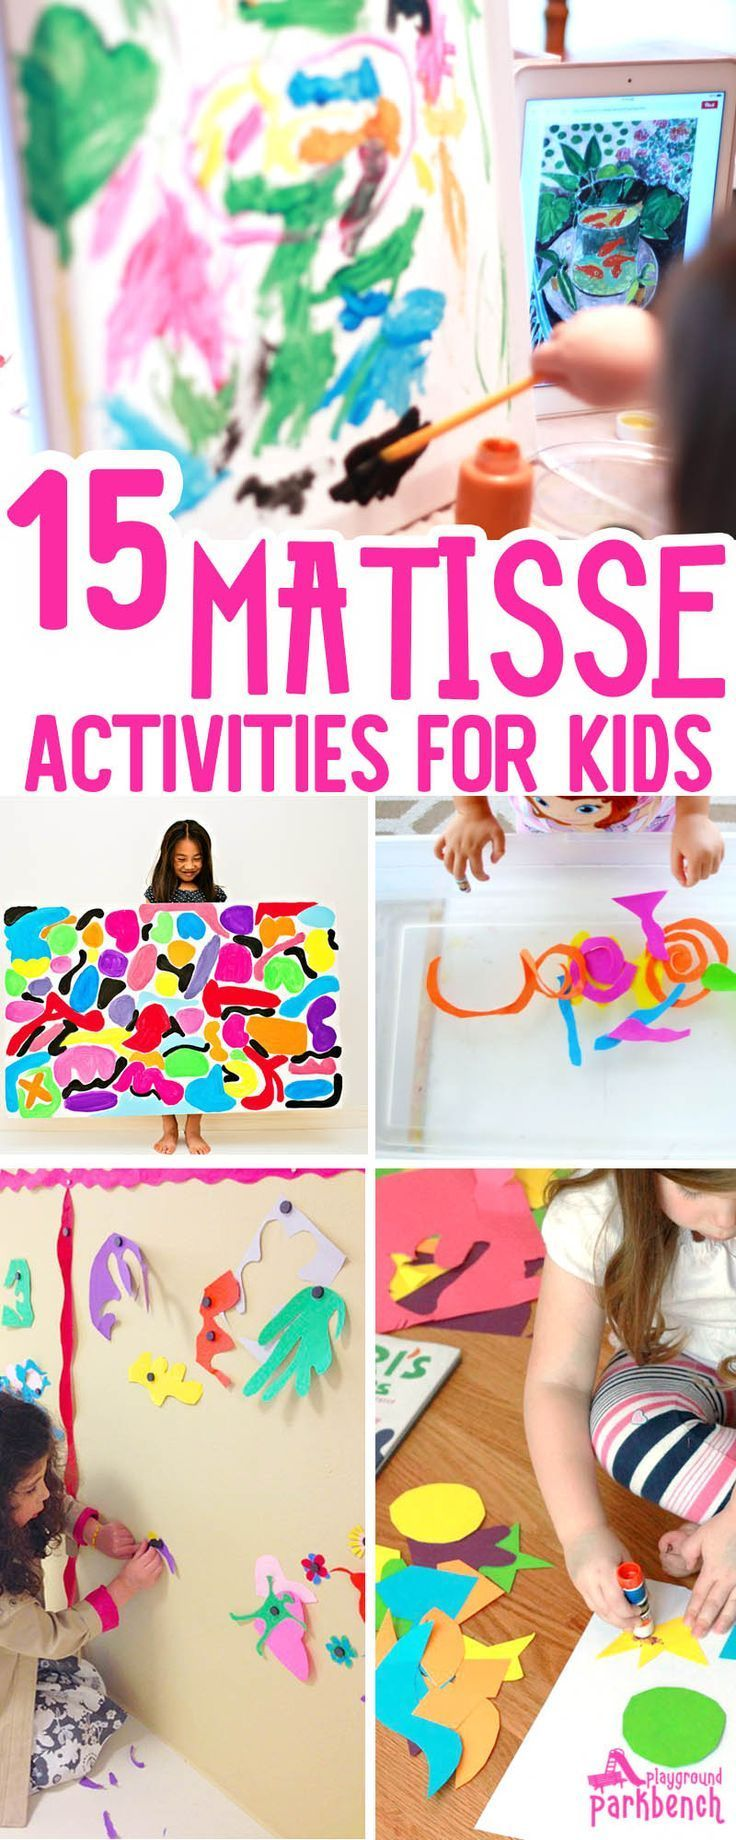 Matisse Art Projects for Kids - art and hands-on activities inspired by the bold colors and organic shapes used by Henri Matisse. An awesome Art Study for Kids of all ages | Art for Kids | Art for Preschool |